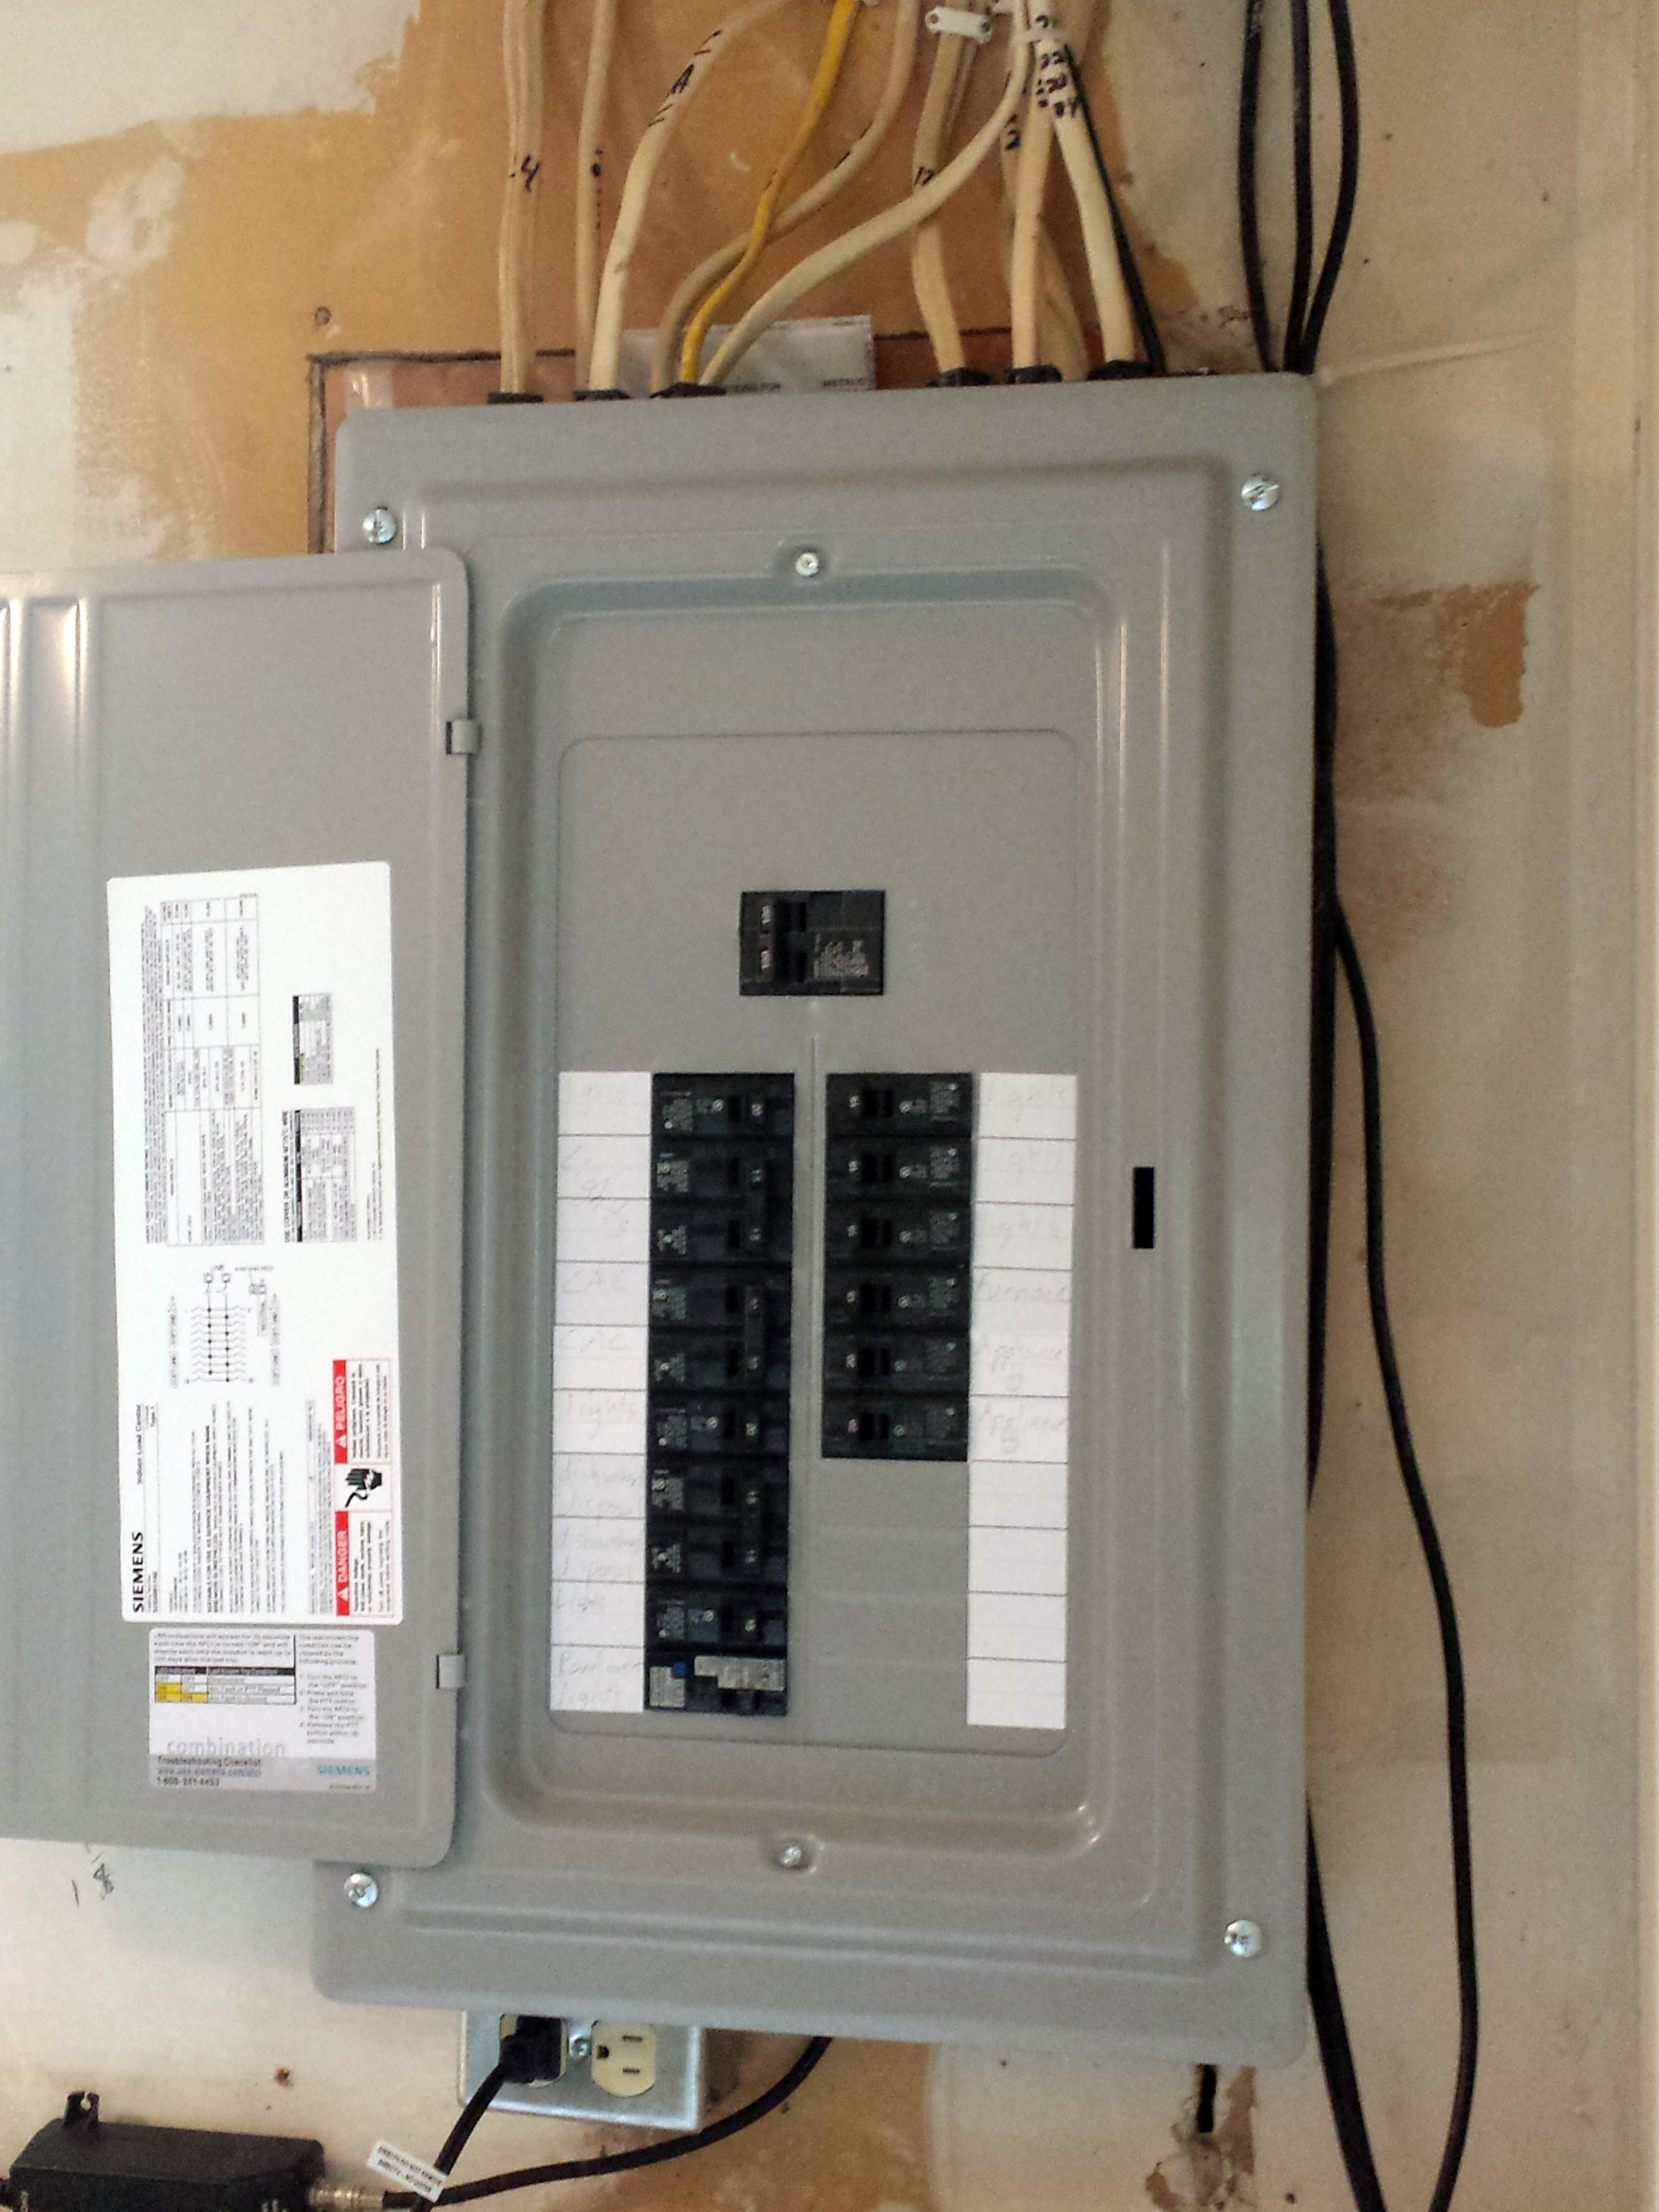 hight resolution of replace fuse box replace fpe breakers total electric 100 amp panel replacing an fpe in coon